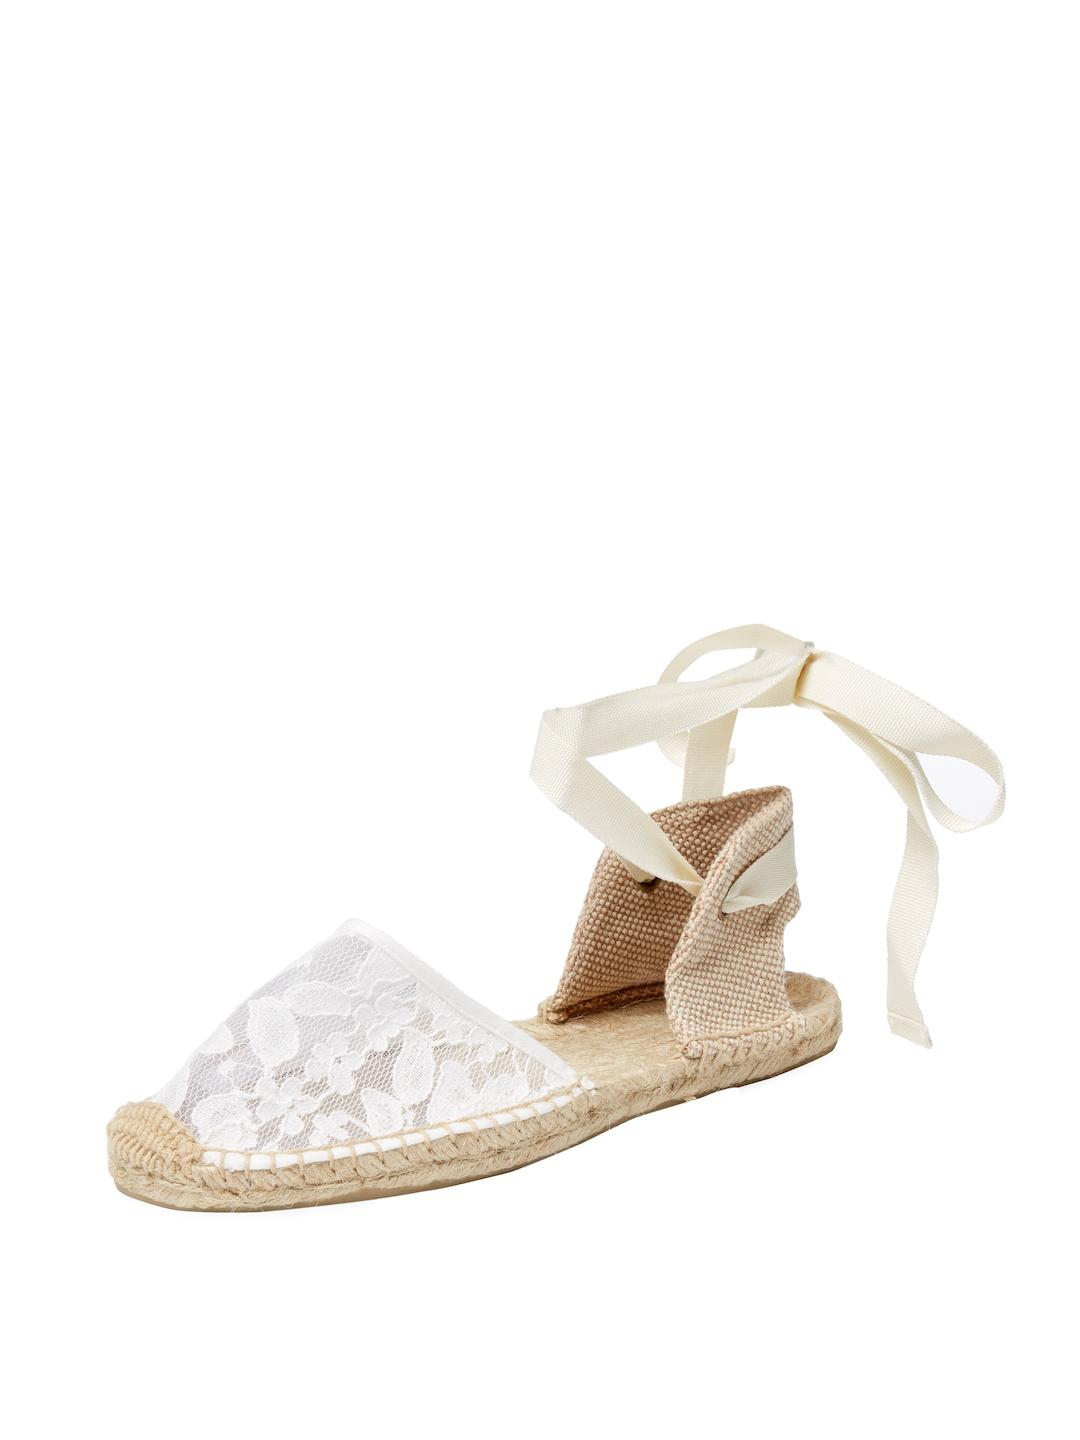 6d95ace71652 Soludos Chantilly Lace Ankle-wrap Espadrille Sandal in White - Lyst